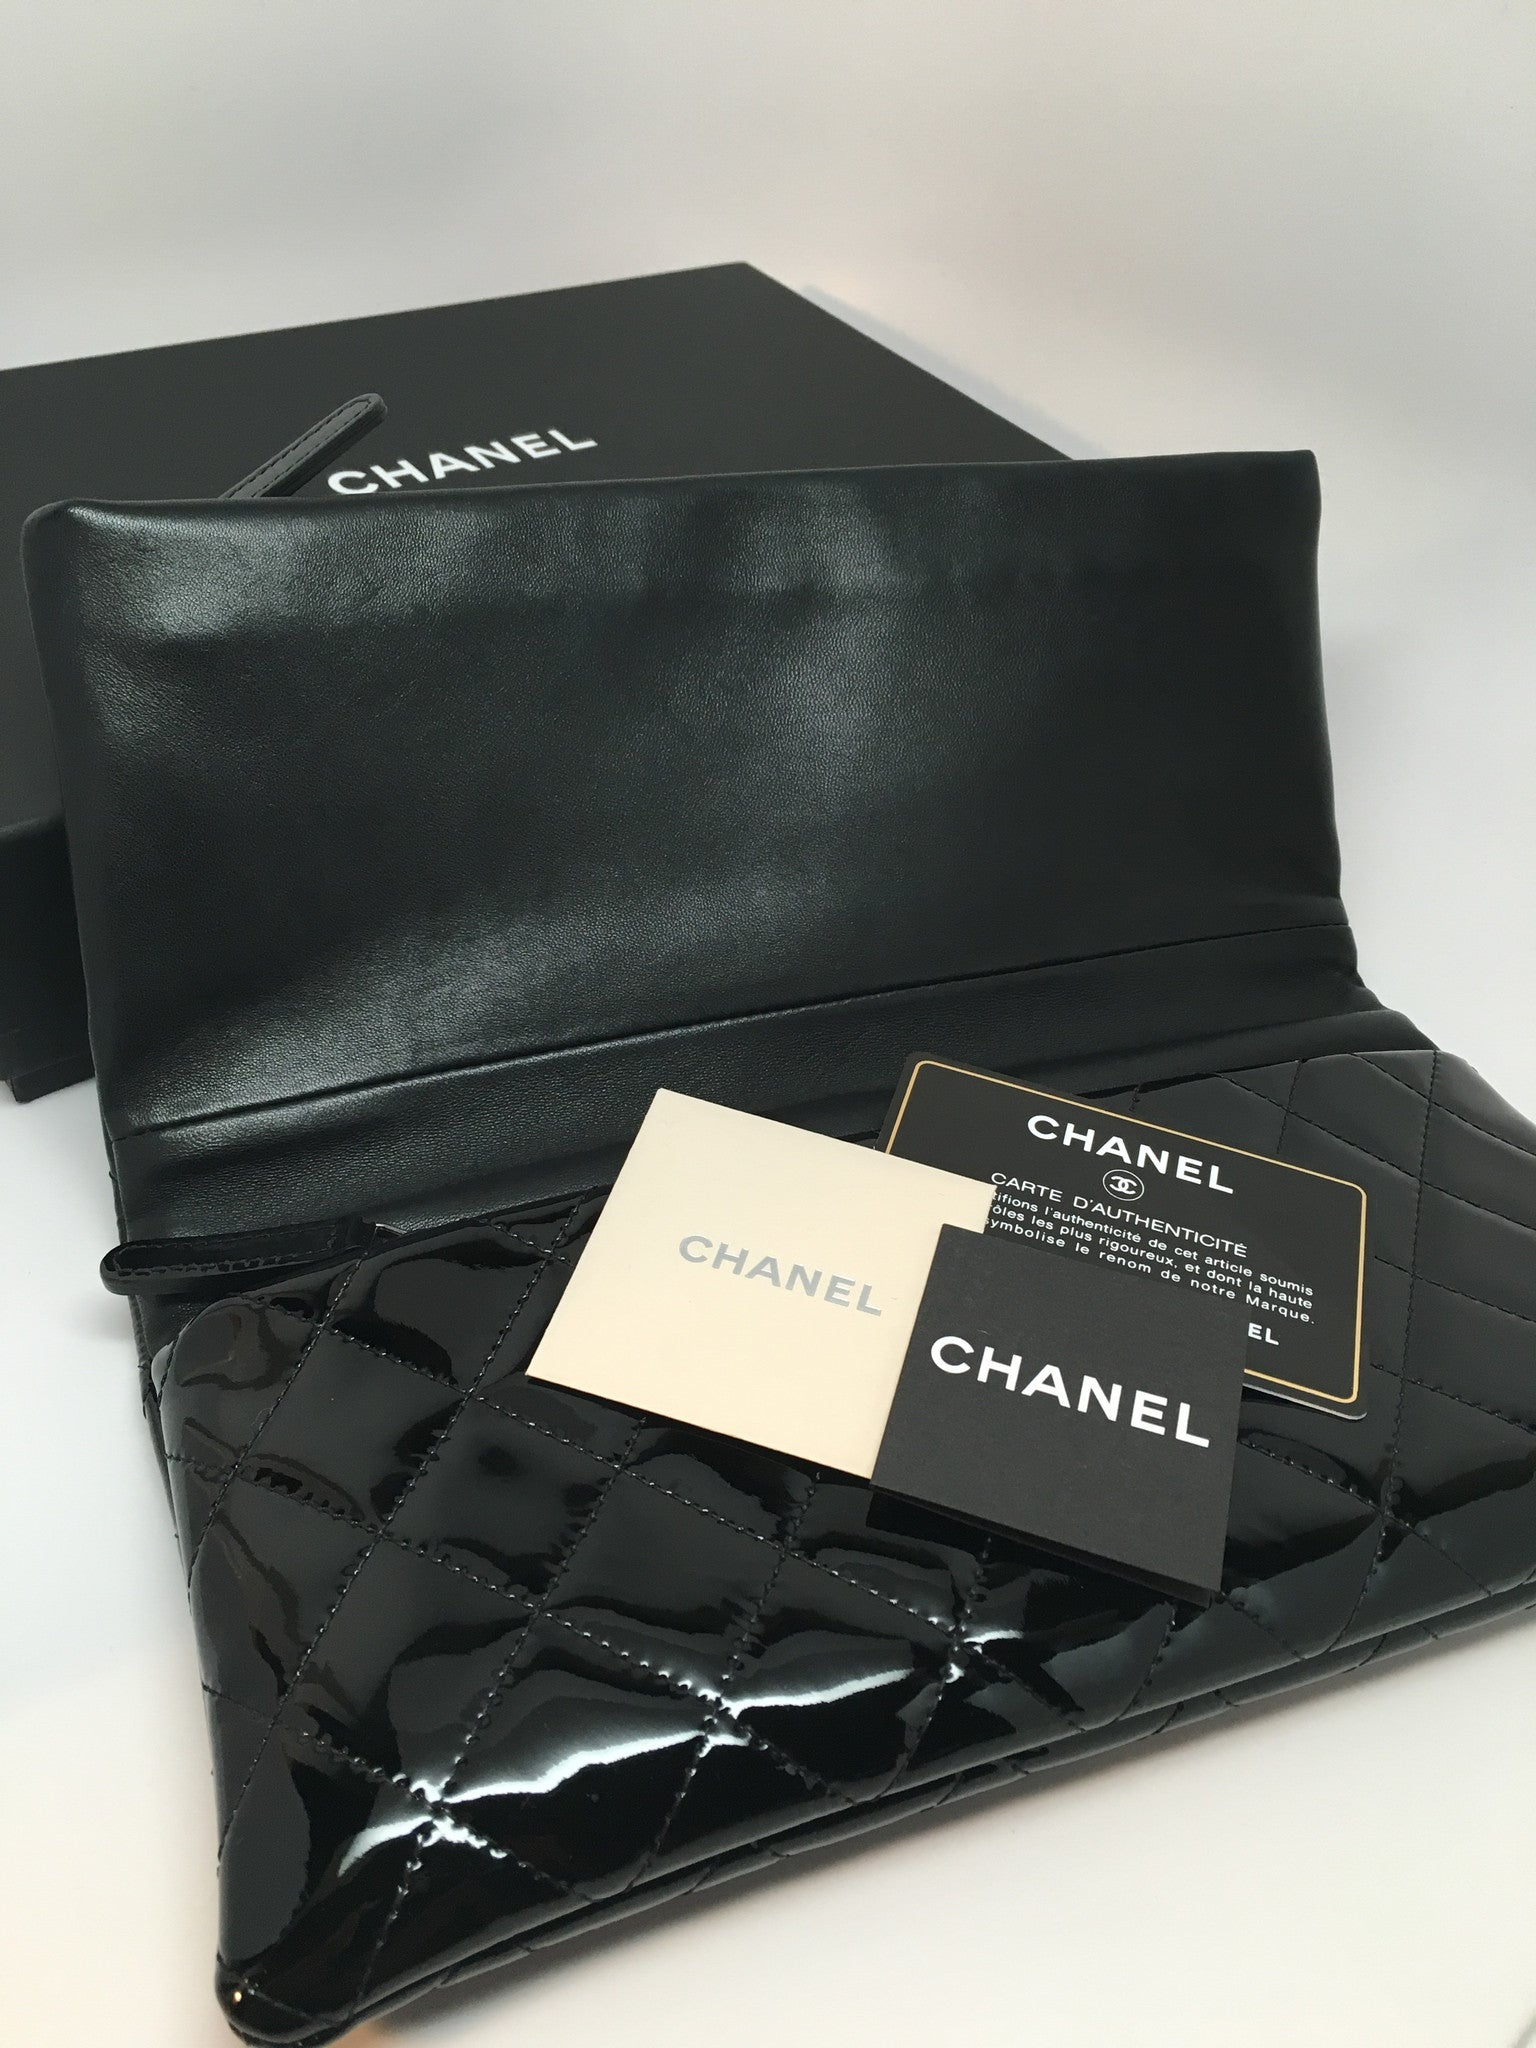 CHANEL PATENT FOLDED CLUTCH